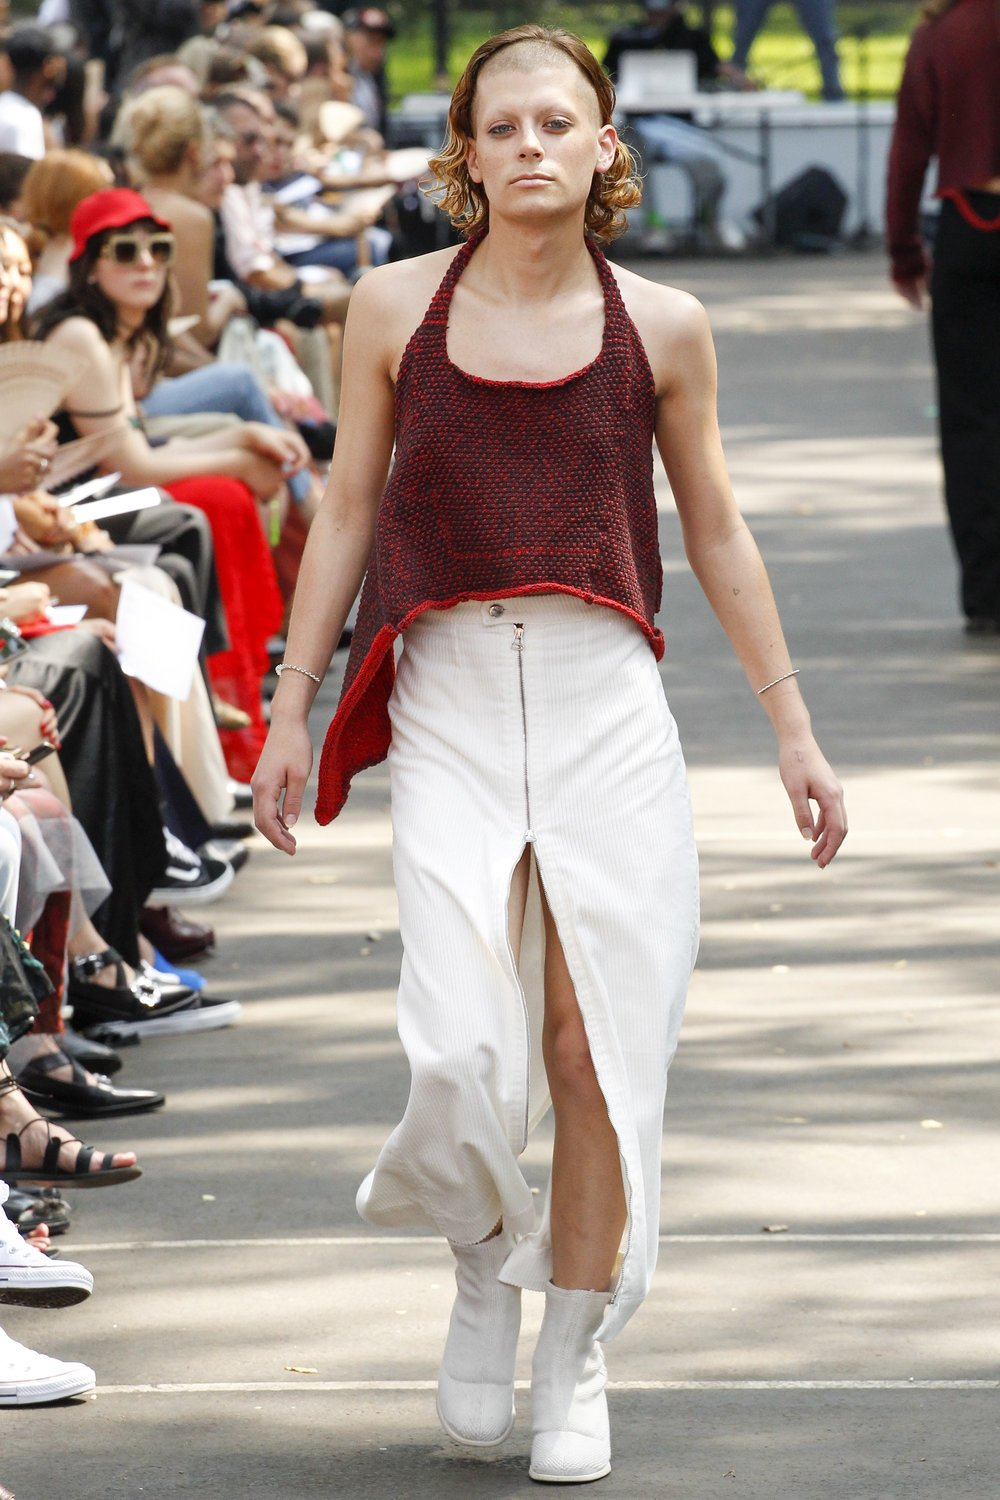 a7c09aa52f75 For their SS 2017 collection, the duo's 10th, designers Mike Eckhaus and  Zoe Latta brought it home. Opting to show the collection in the Lower East  Side's ...